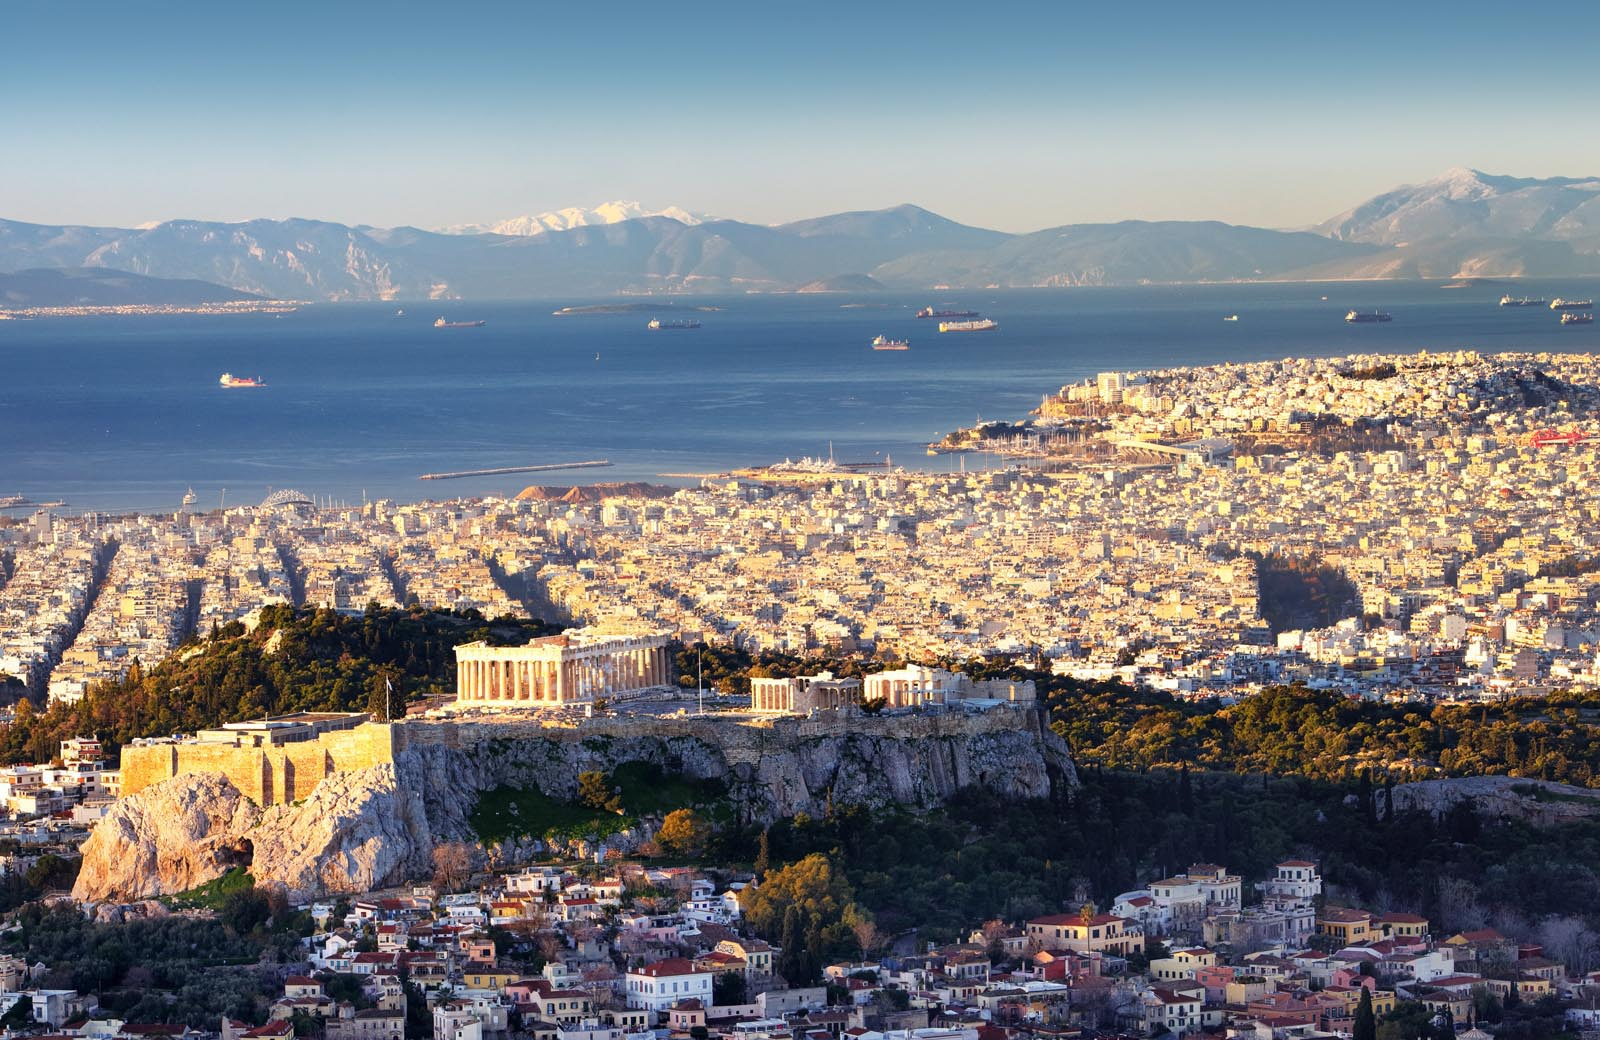 Enlarged: View of Athens and the Saronic Gulf with Acropolis